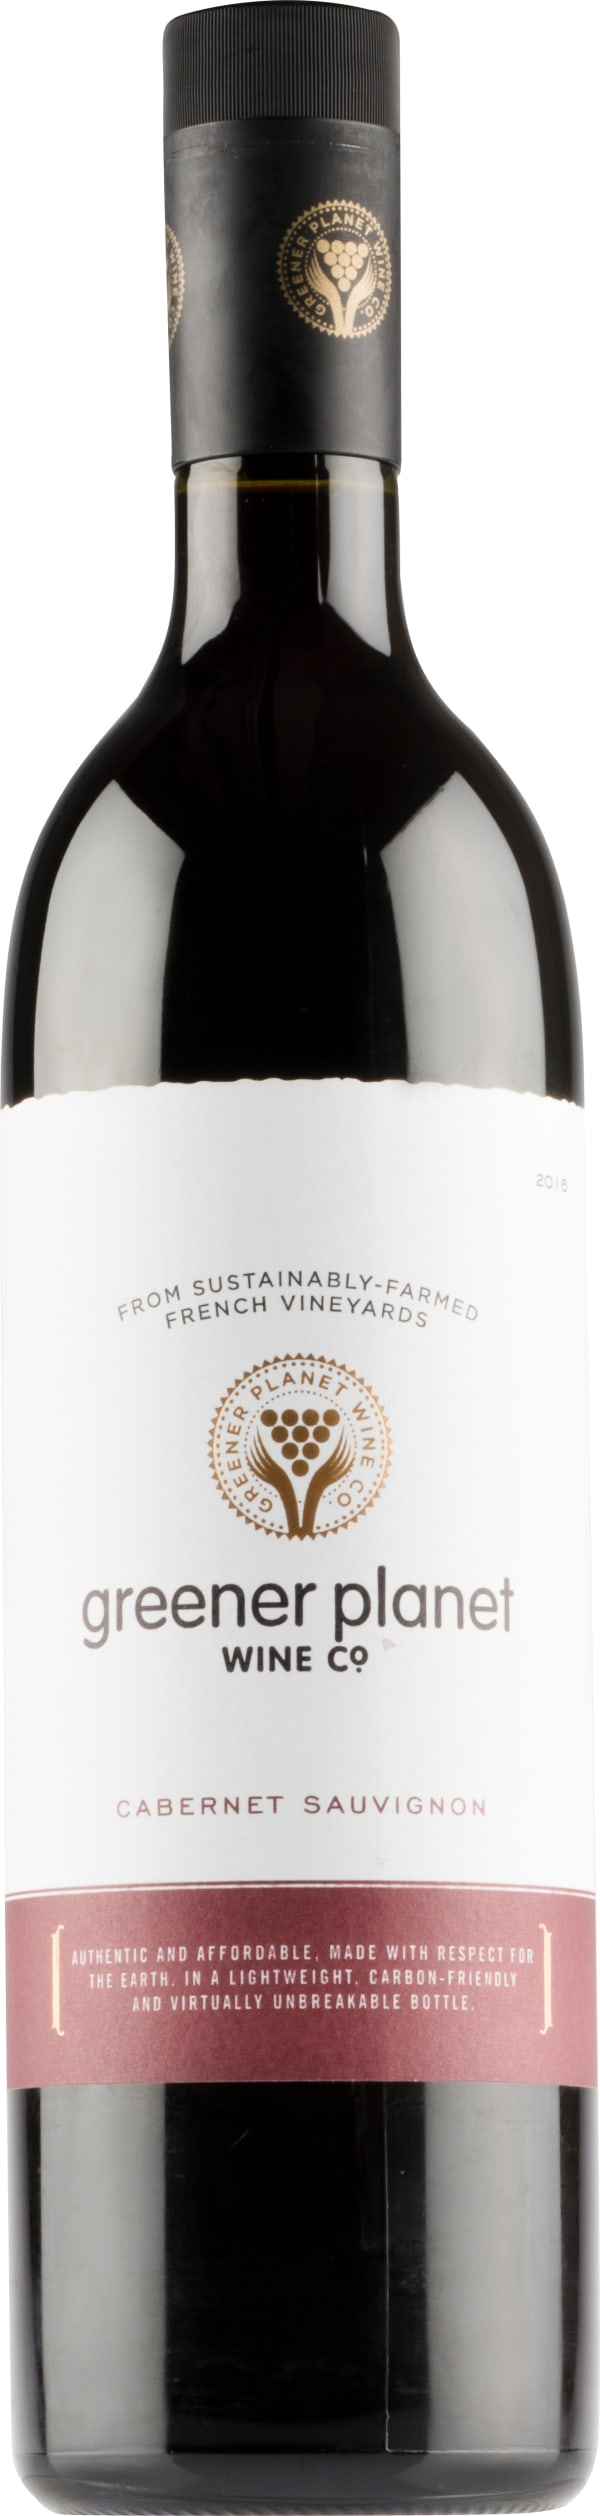 Greener Planet Cabernet Sauvignon 2018 plastic bottle